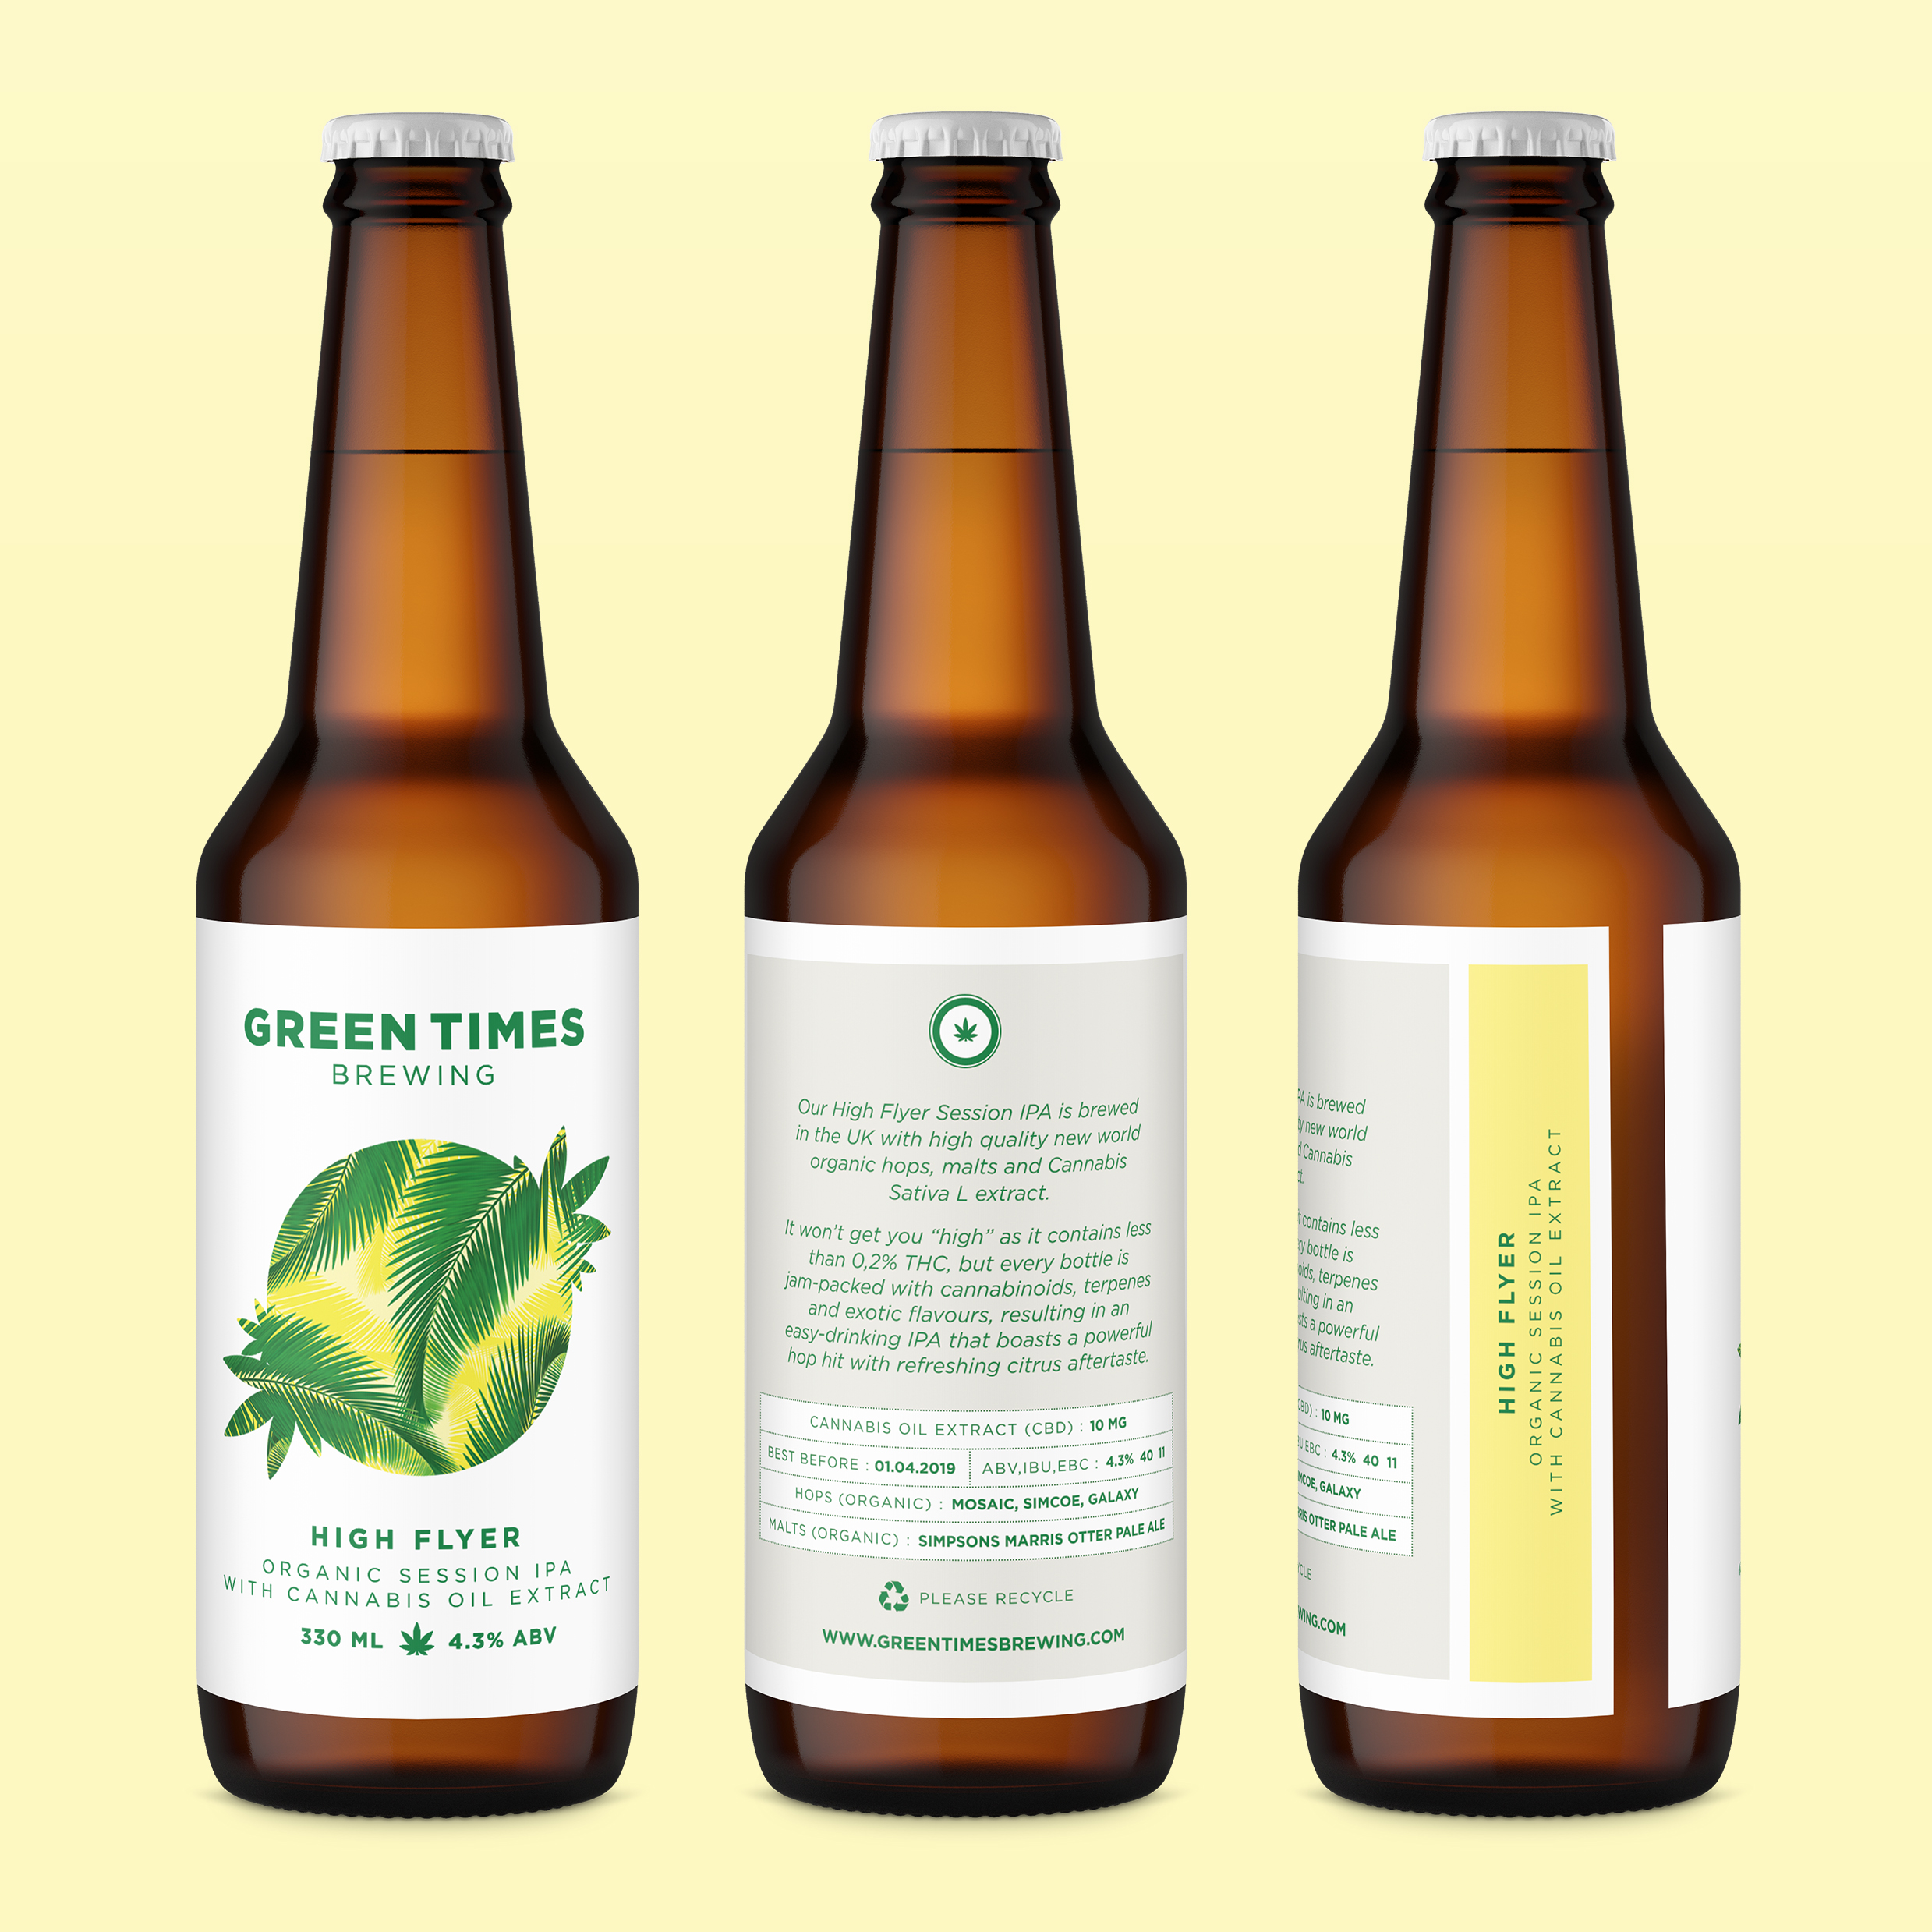 Website bottlesvisual3 From Heineken and Coors To Craft and Microbrews, This Is The Best Weed Beer In The World